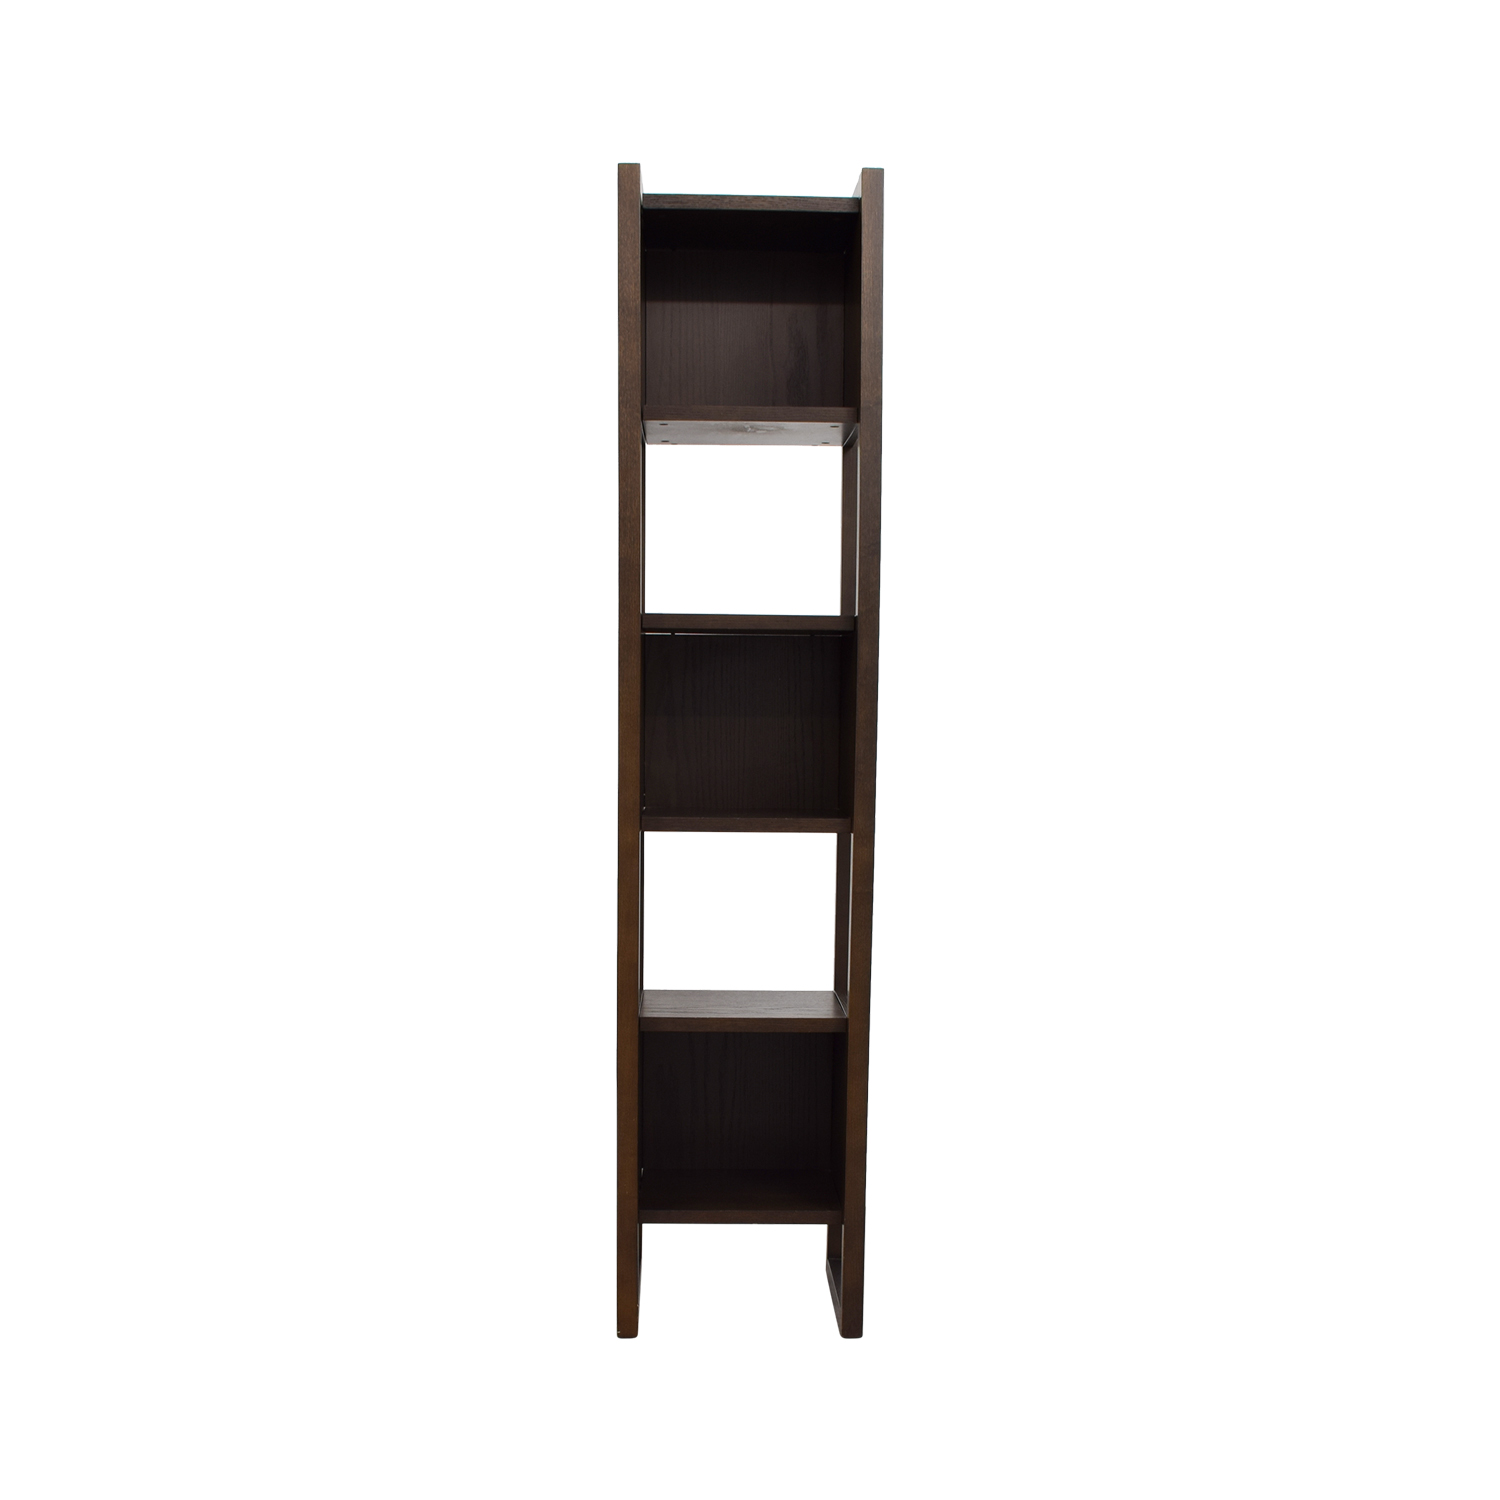 Cubed Wood Shelf Bookcases & Shelving